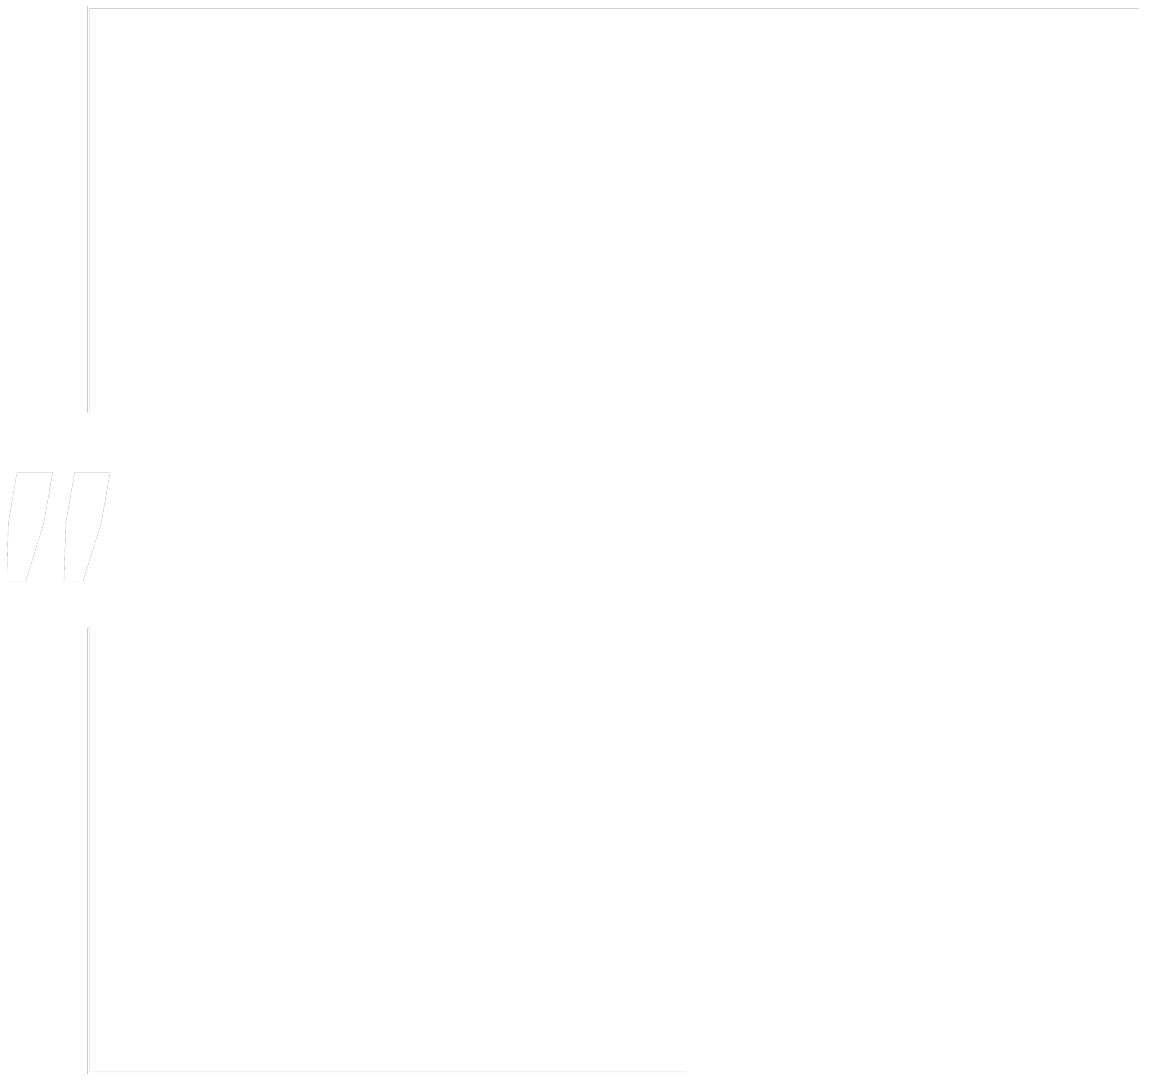 INNOVATIVE MODELS FOR RAISING CAPITAL ON THE TASE